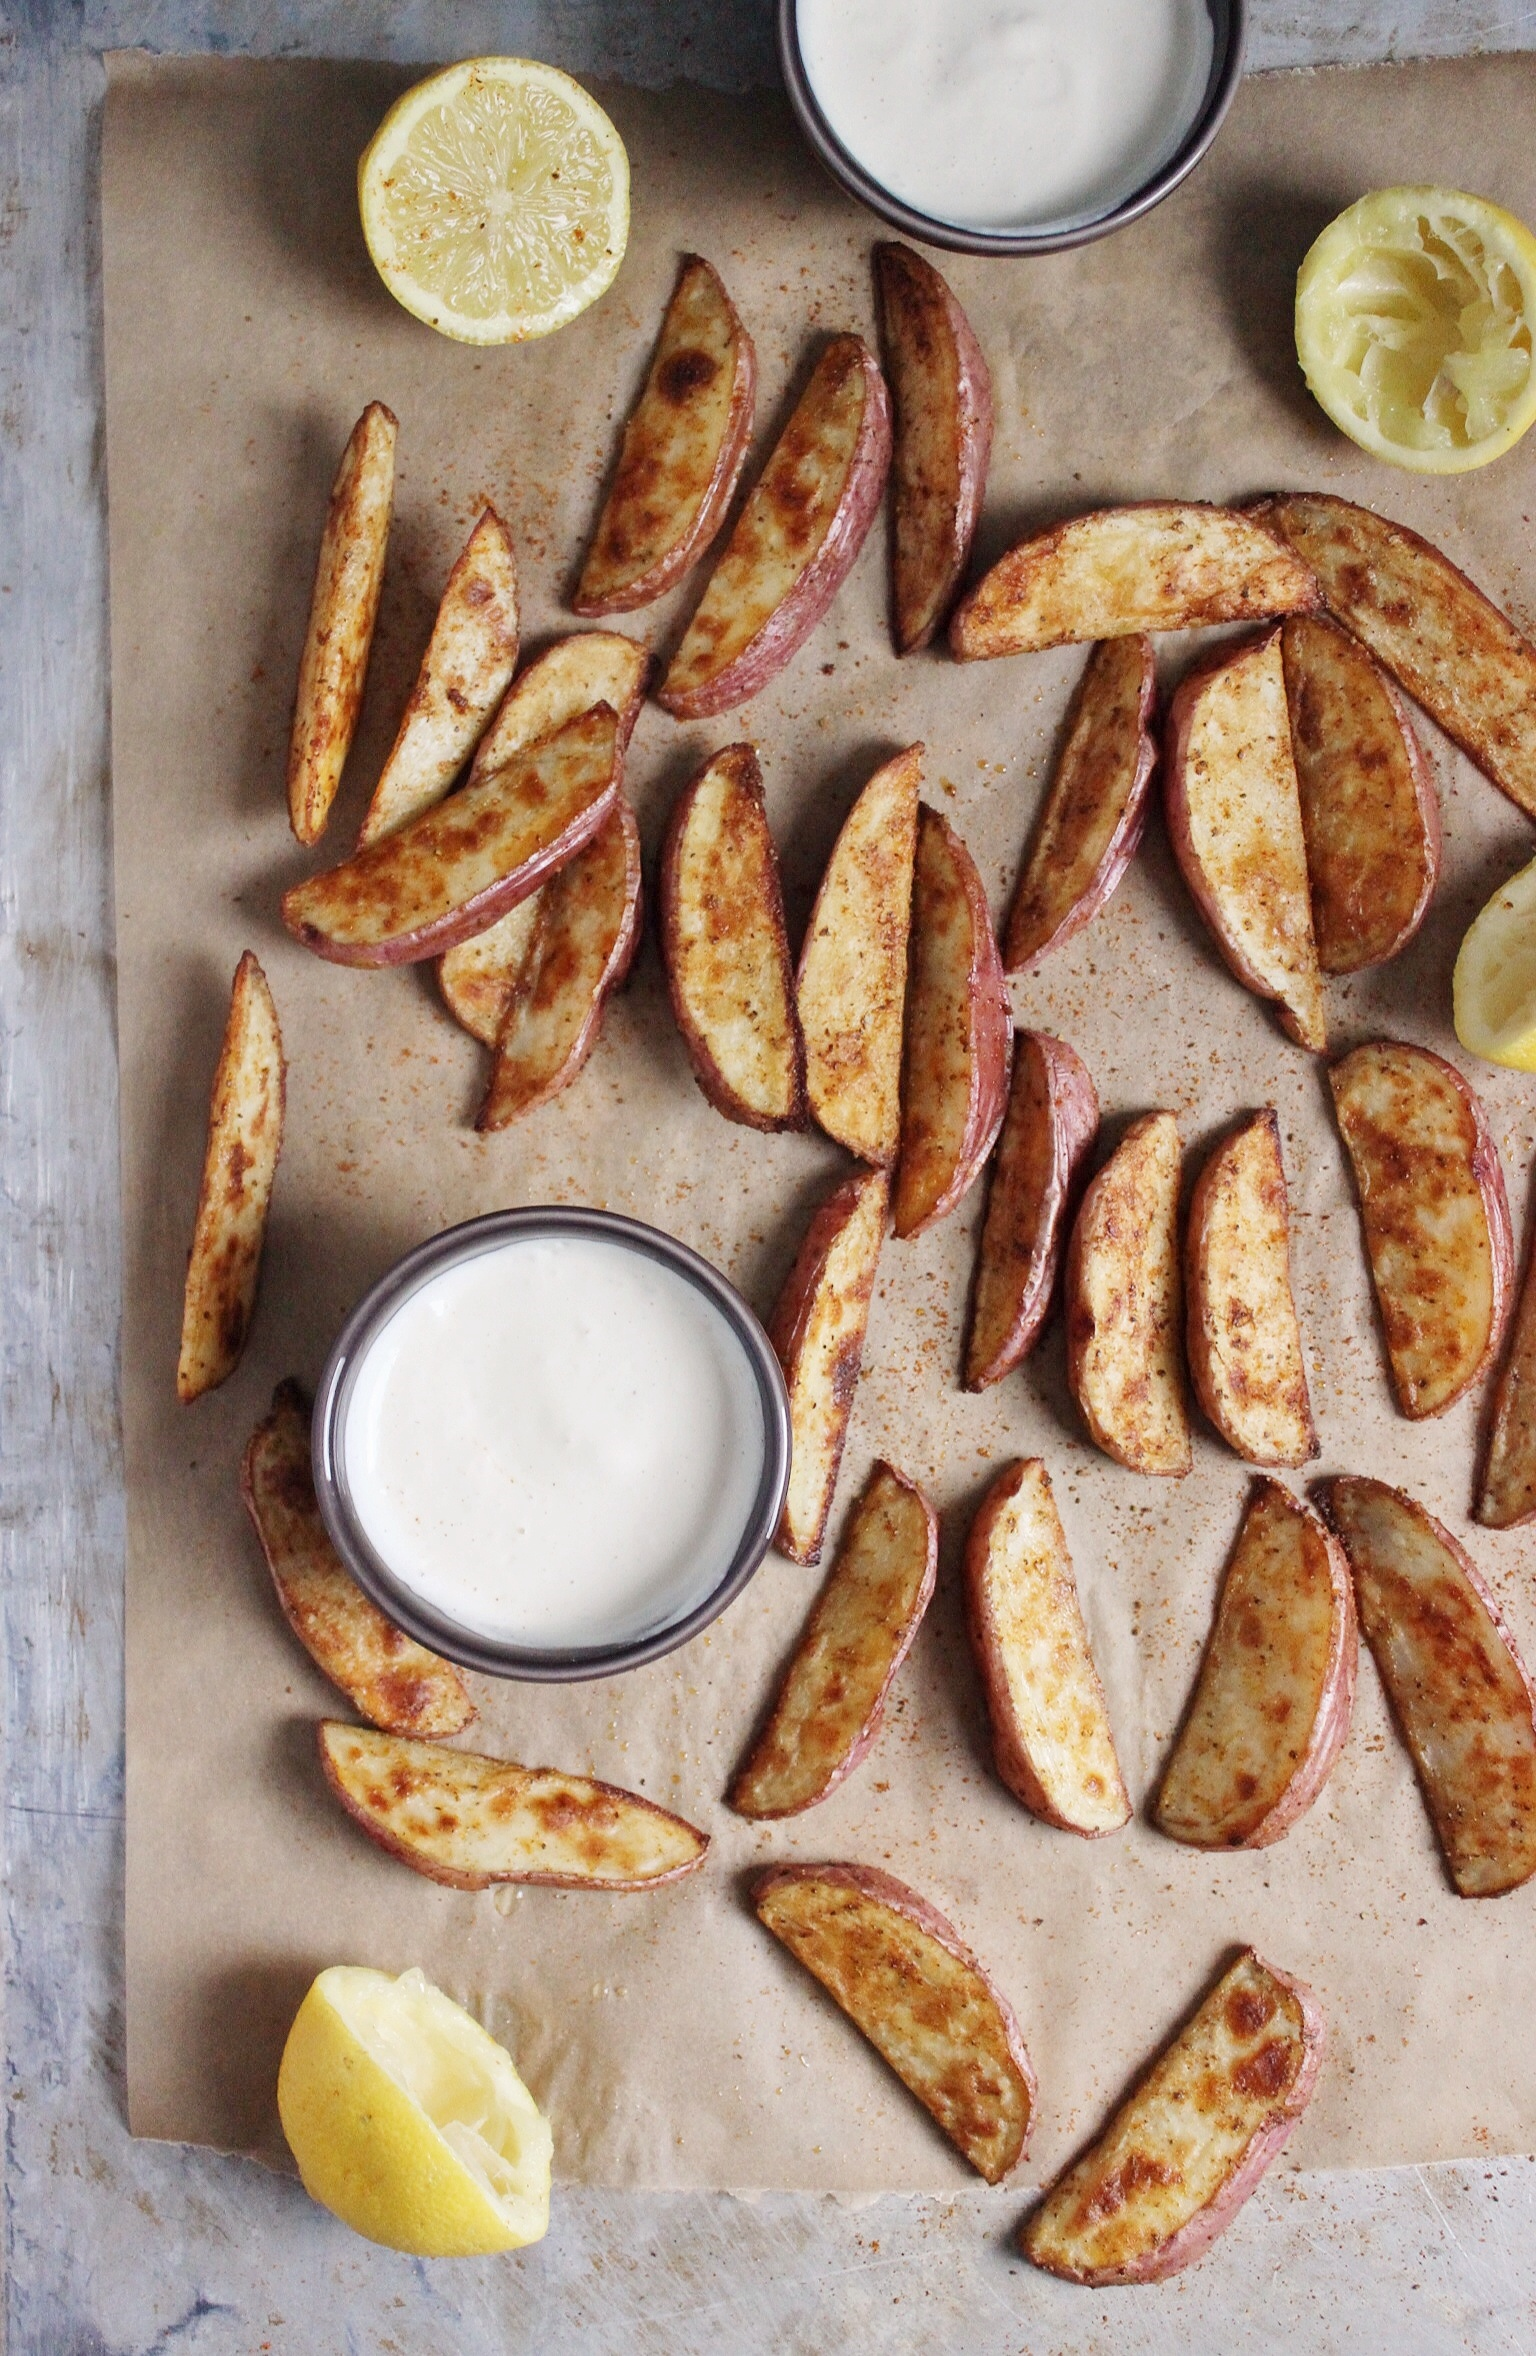 Baked Old Bay Fries with Creamy Cashew Onion Dip